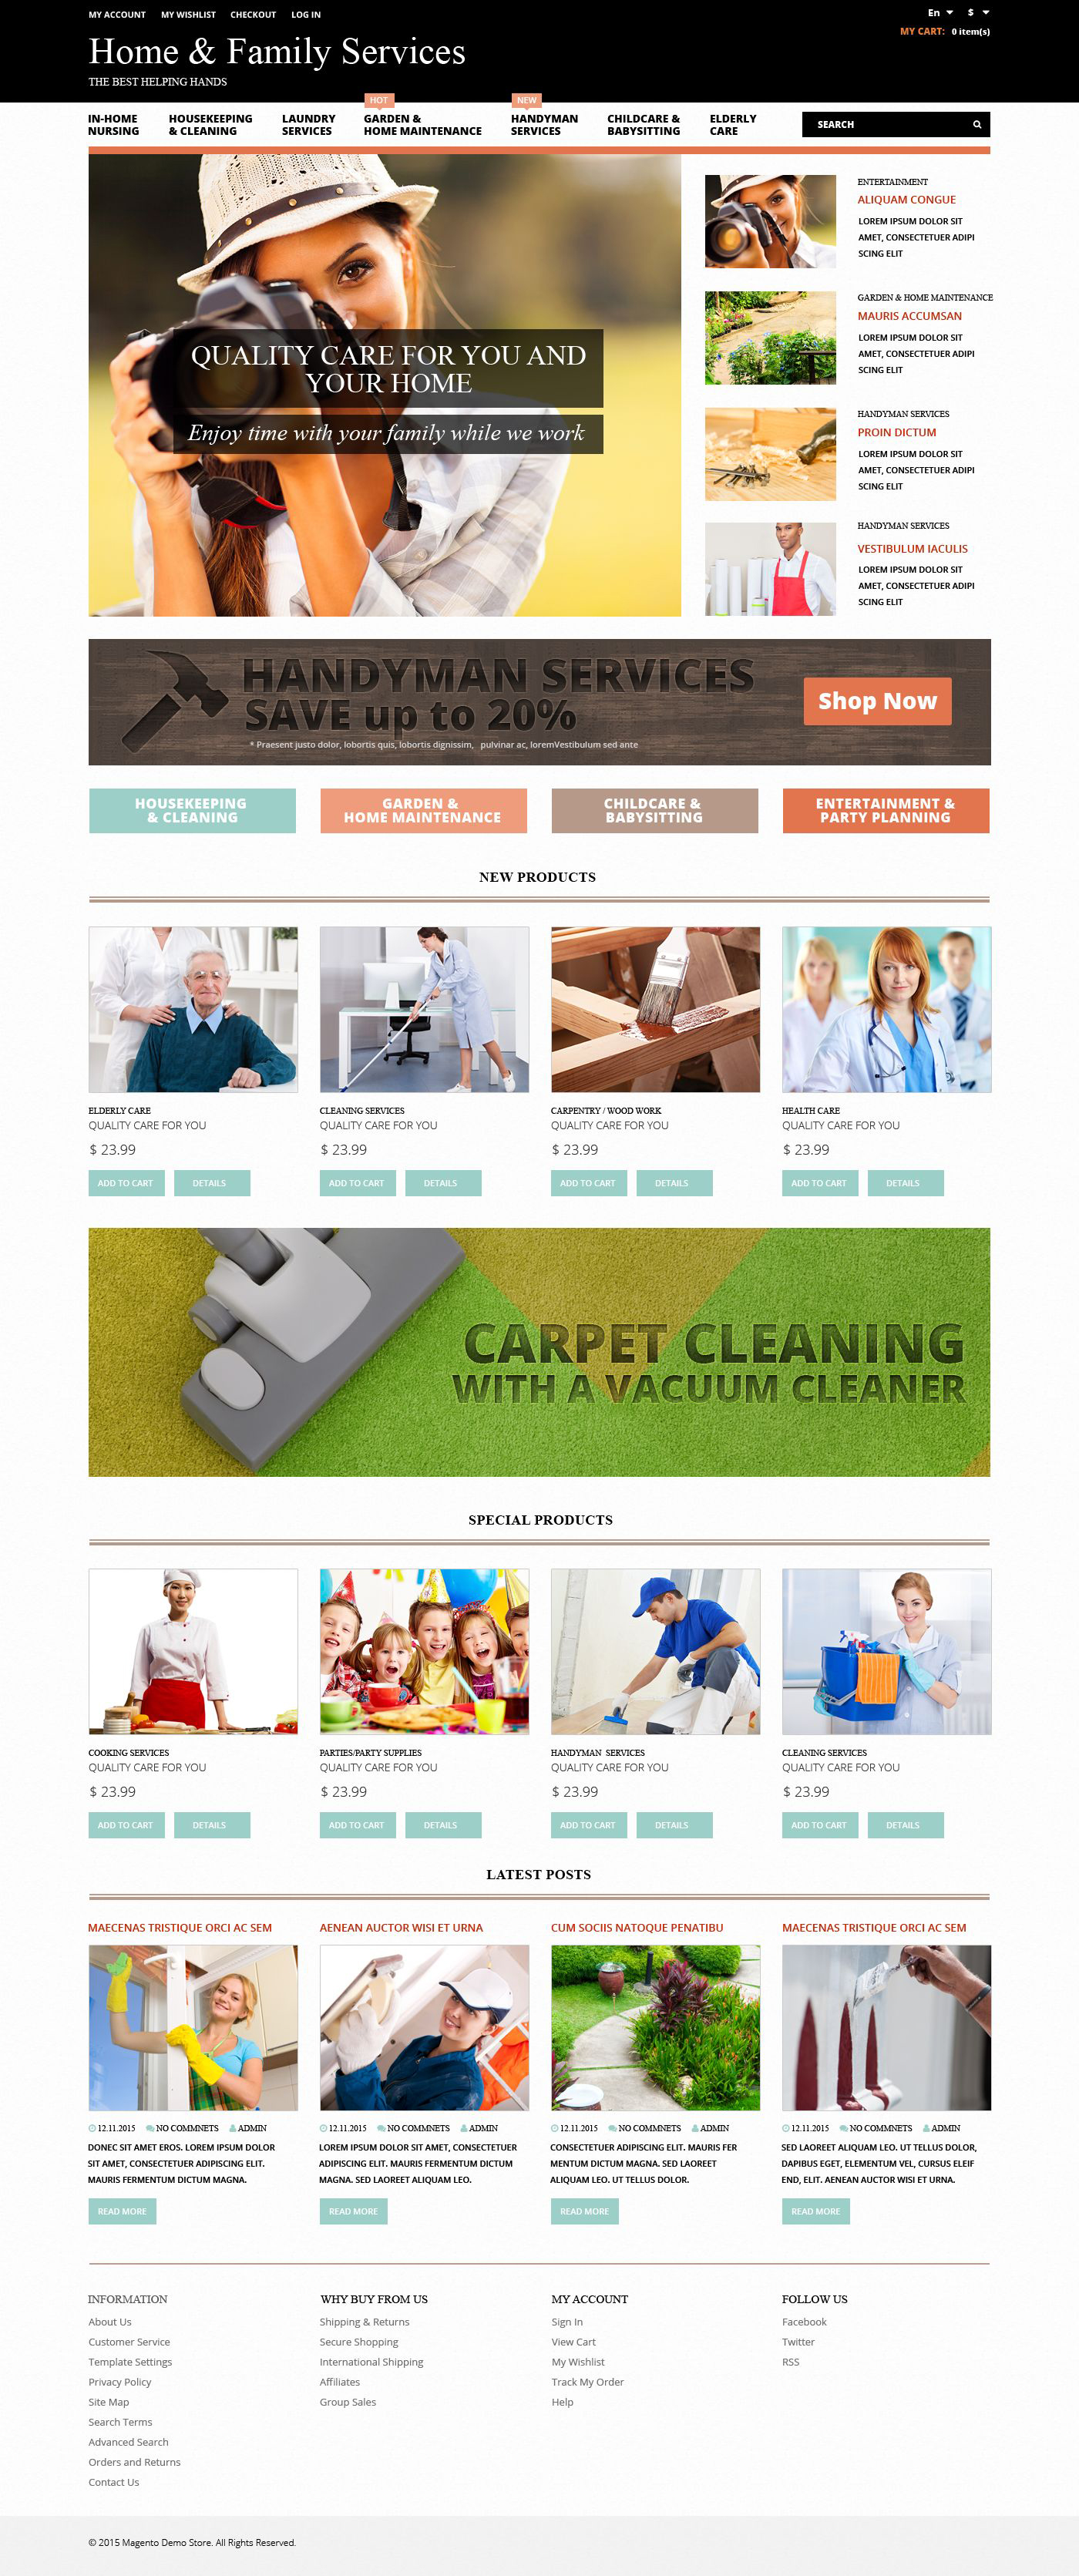 The Home & Family Magento Design 53482, one of the best Magento themes of its kind (most popular, maintenance services), also known as home & family Magento template, services Magento template, handyman Magento template, cleaning Magento template, tools Magento template, cooking and related with home & family, services, handyman, cleaning, tools, cooking, etc.